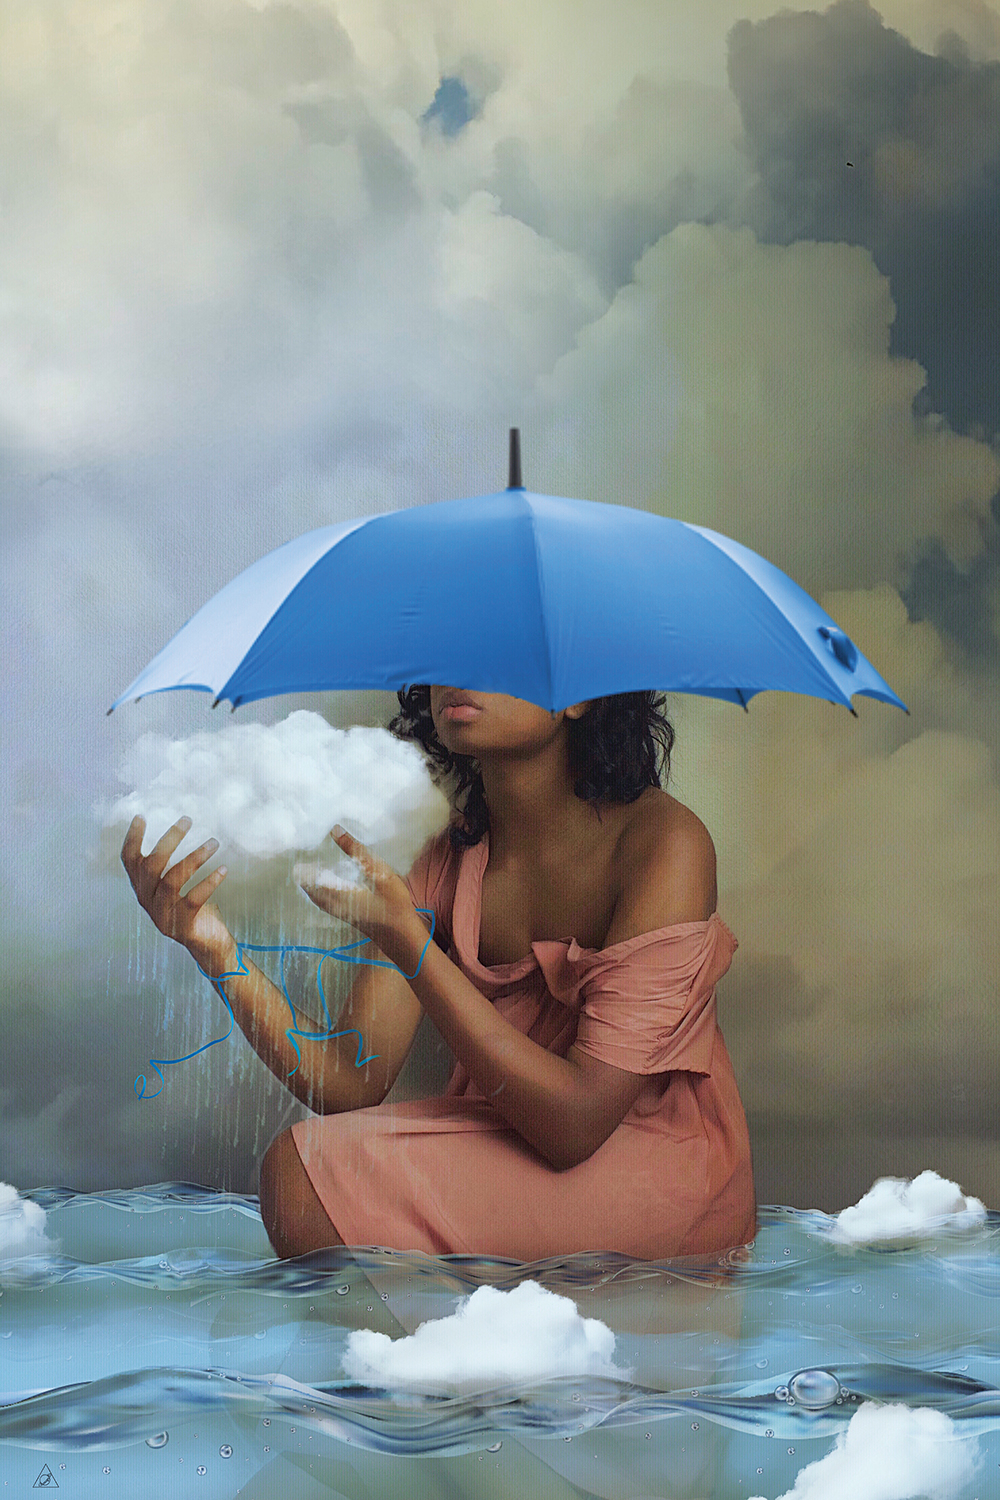 Right Or Wrong by Deandra Lee showcases a woman wearing a pink dress with a blue umbrella over her head while holding a cloud and sitting in water